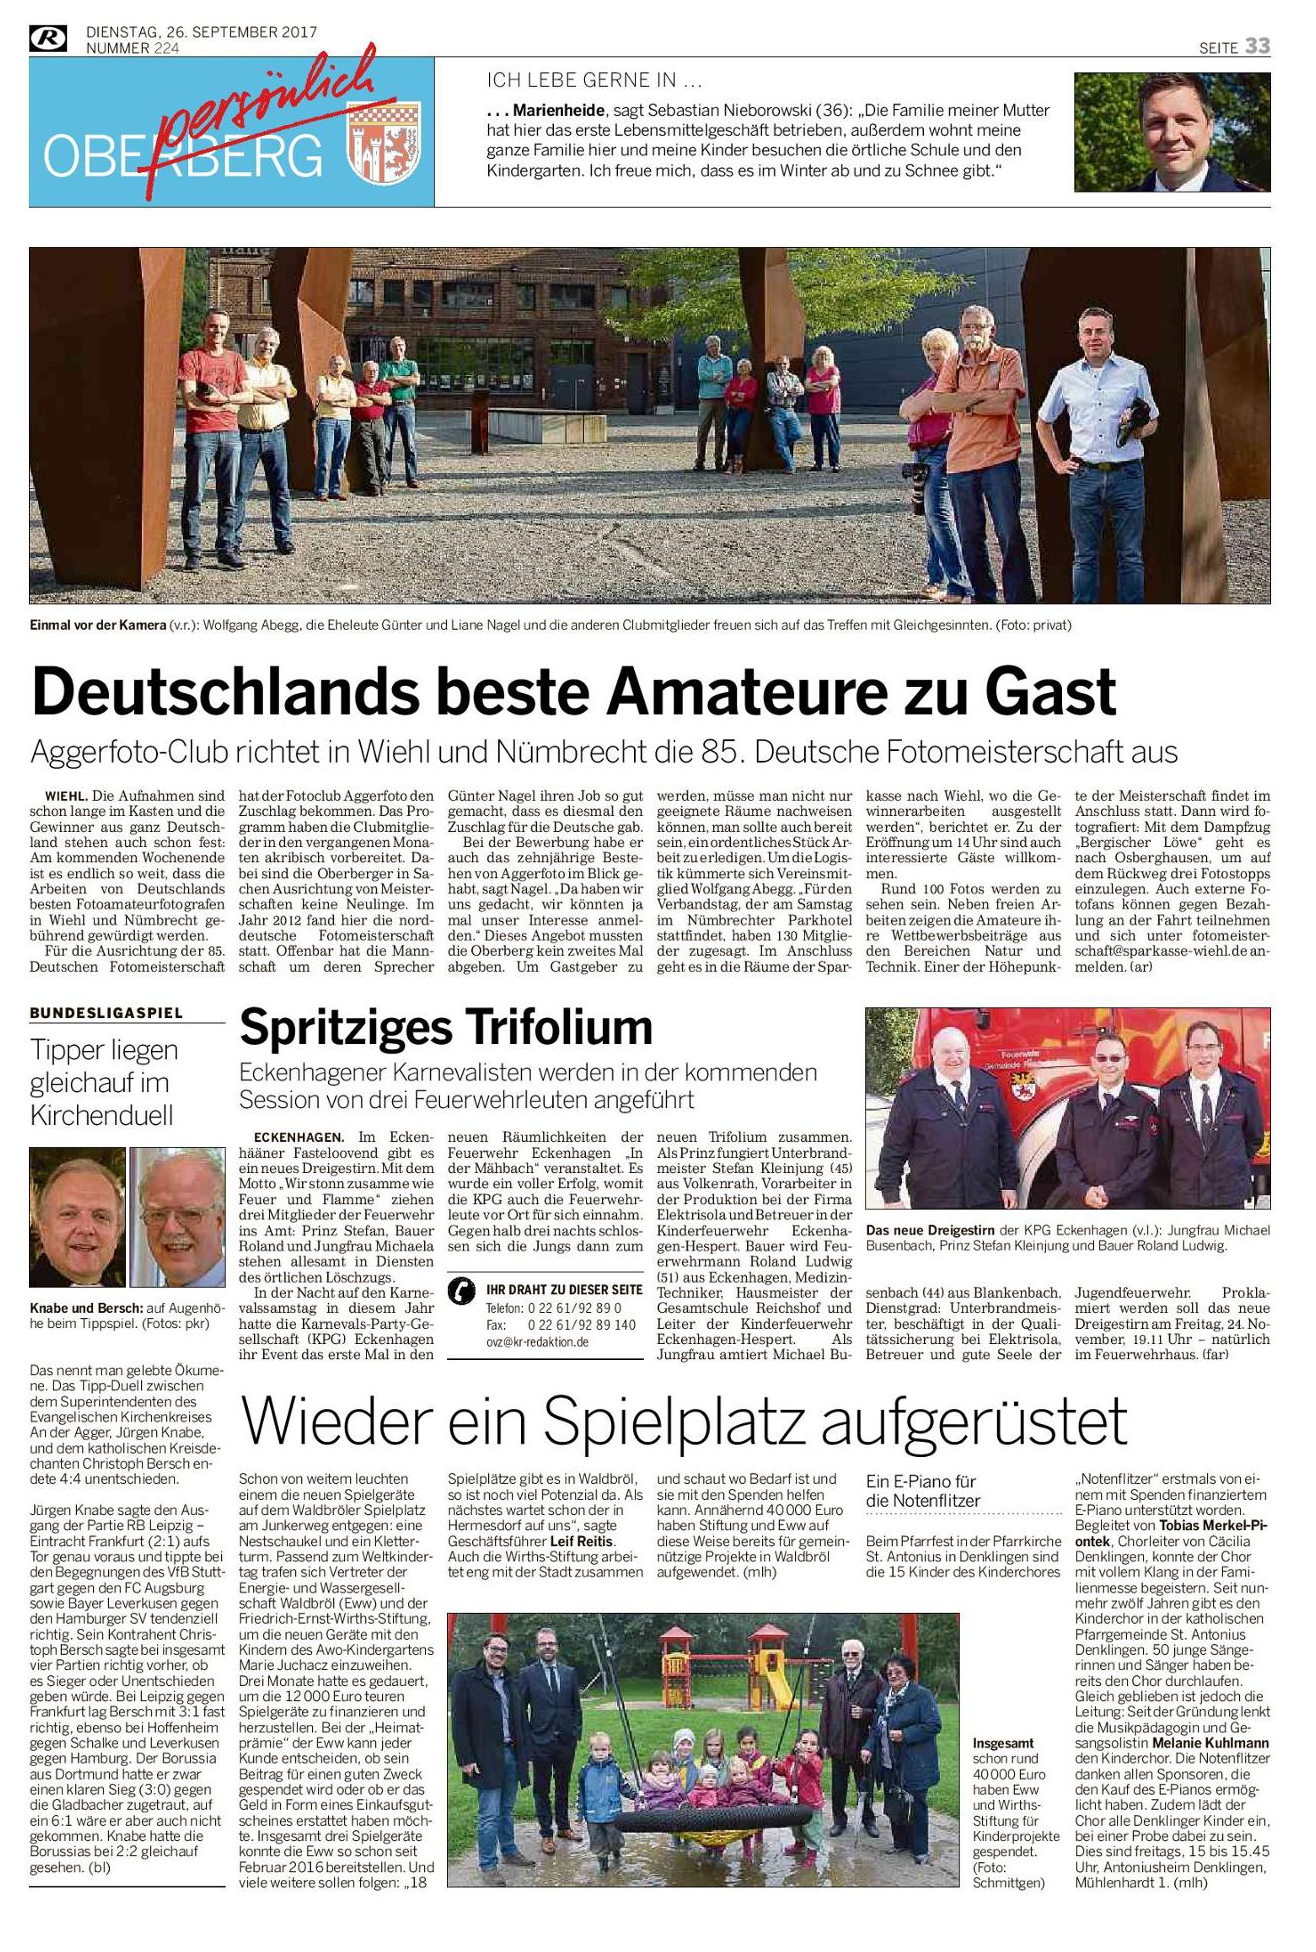 Deutschlands beste Amateure zu Gast – Rundschau September 17